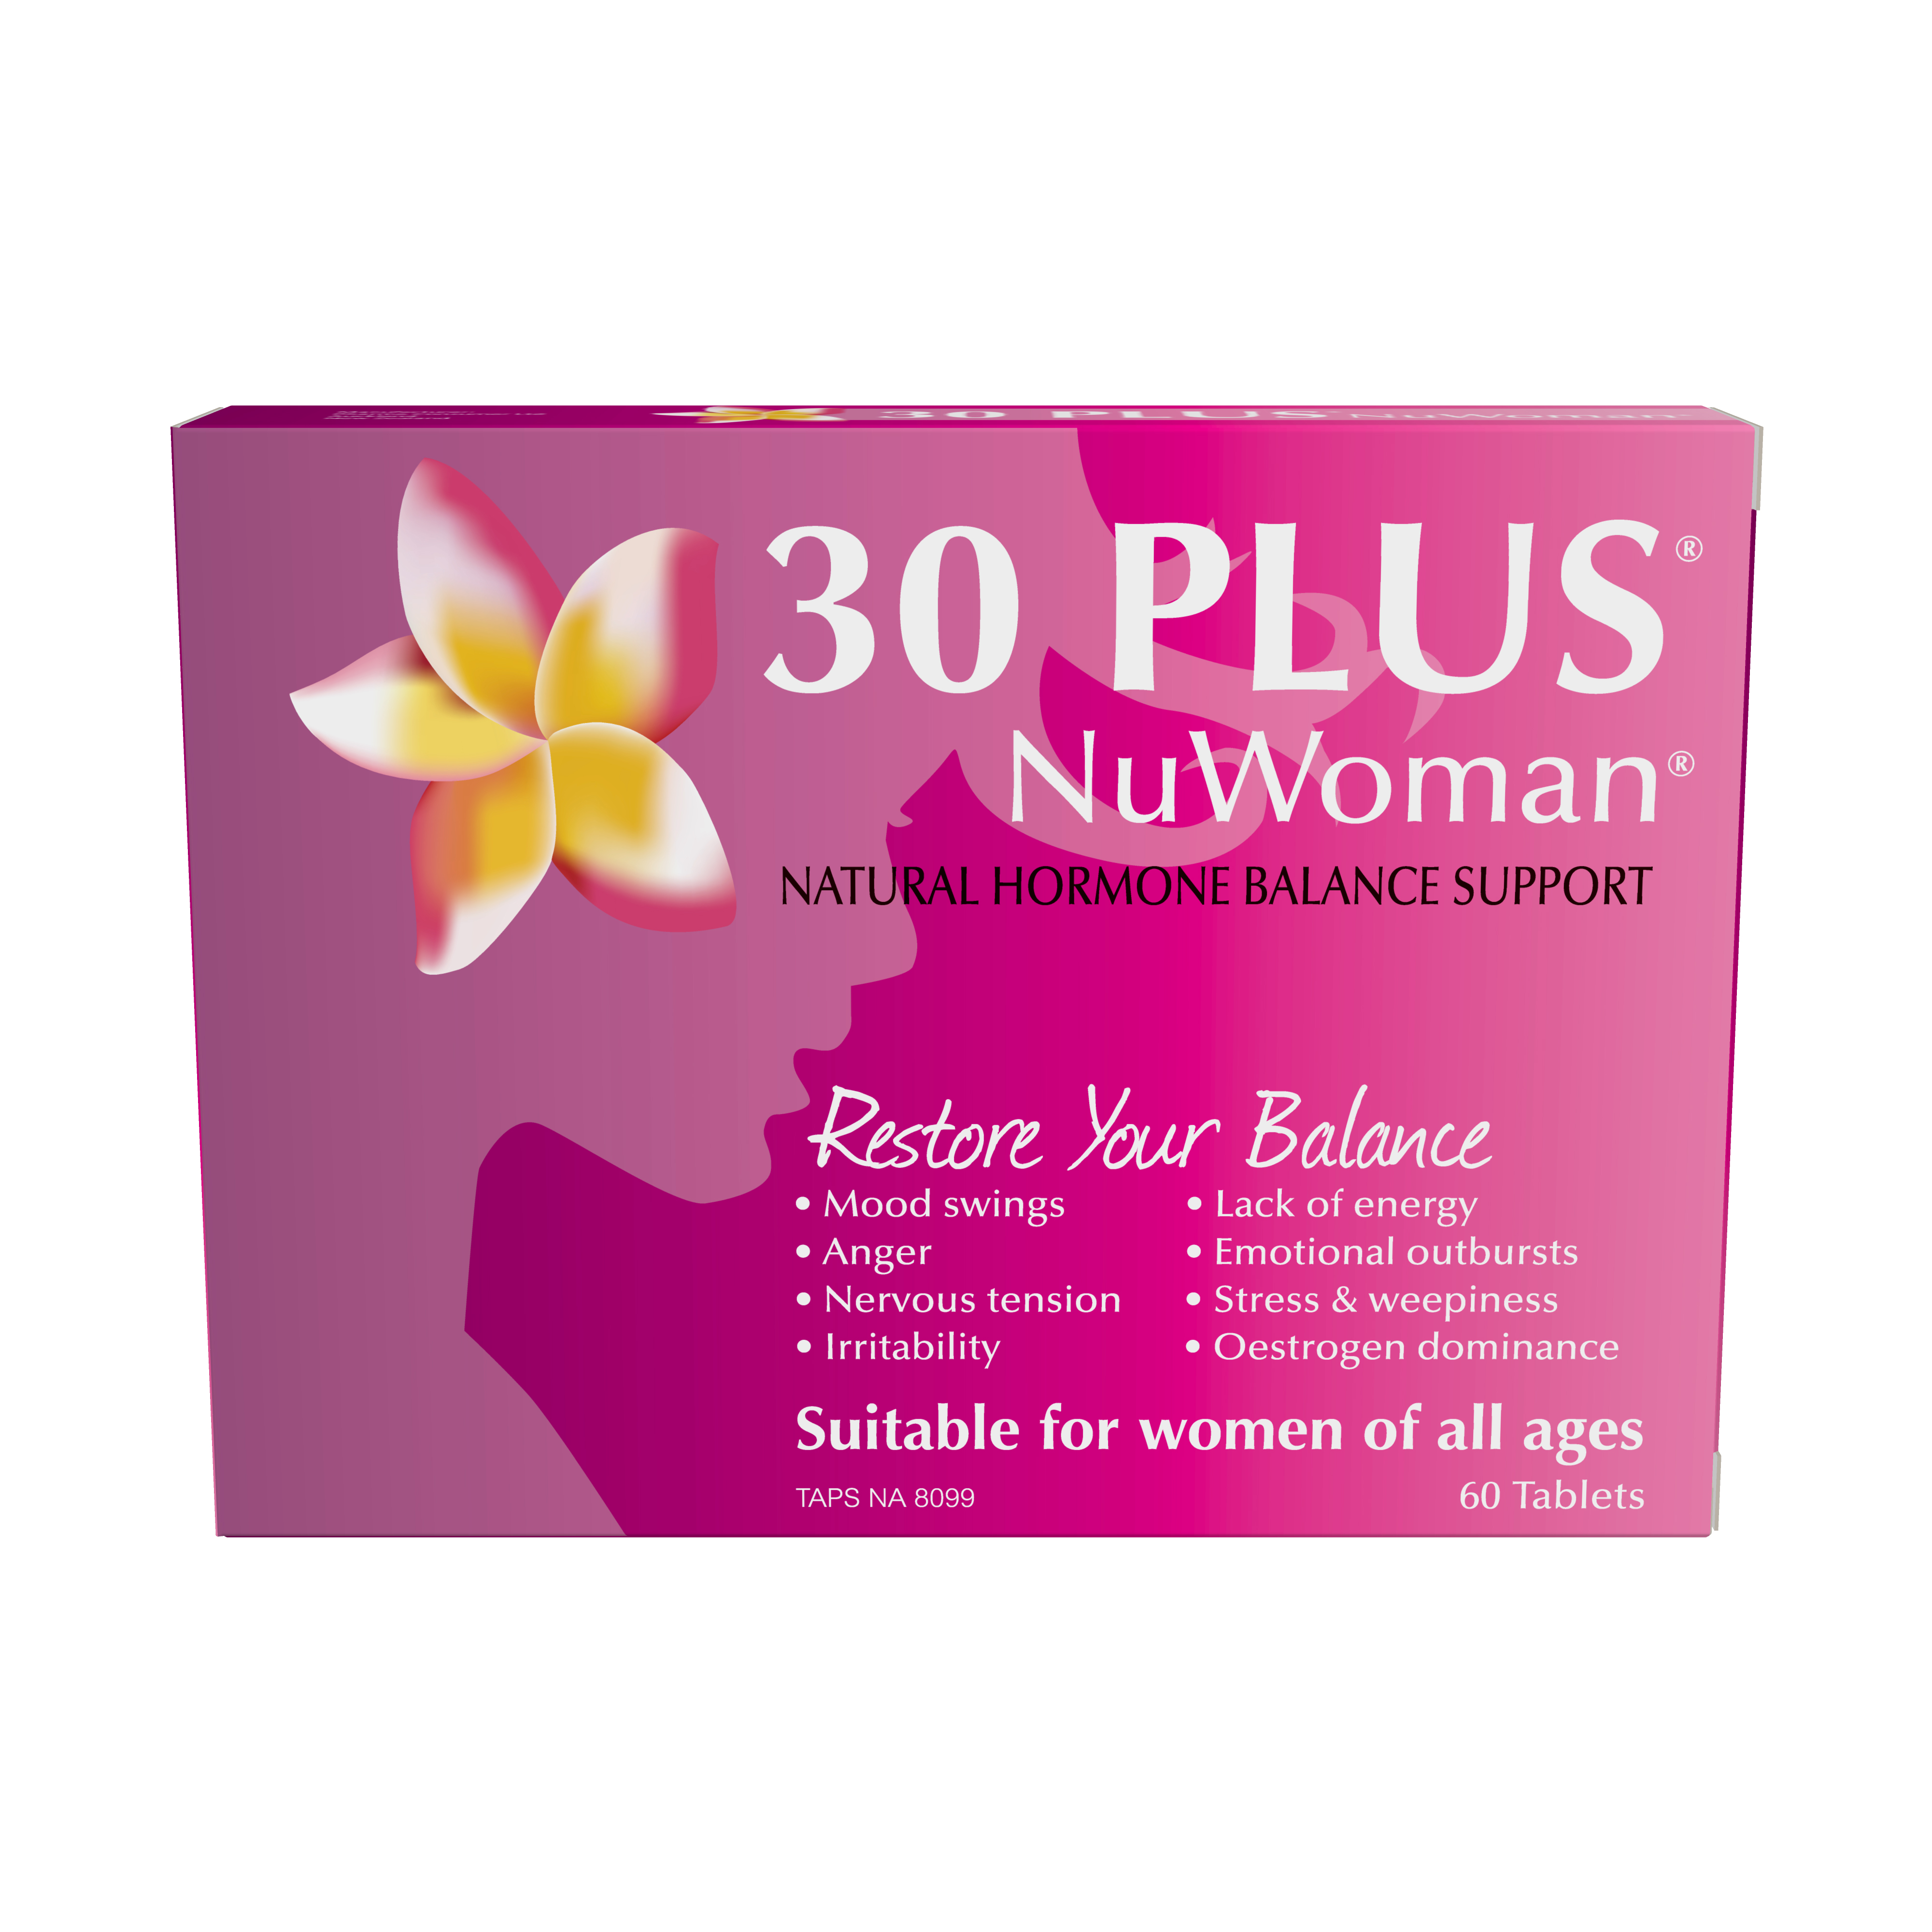 30 PLUS NuWoman Natural Hormone Balance Support 120 Tablets